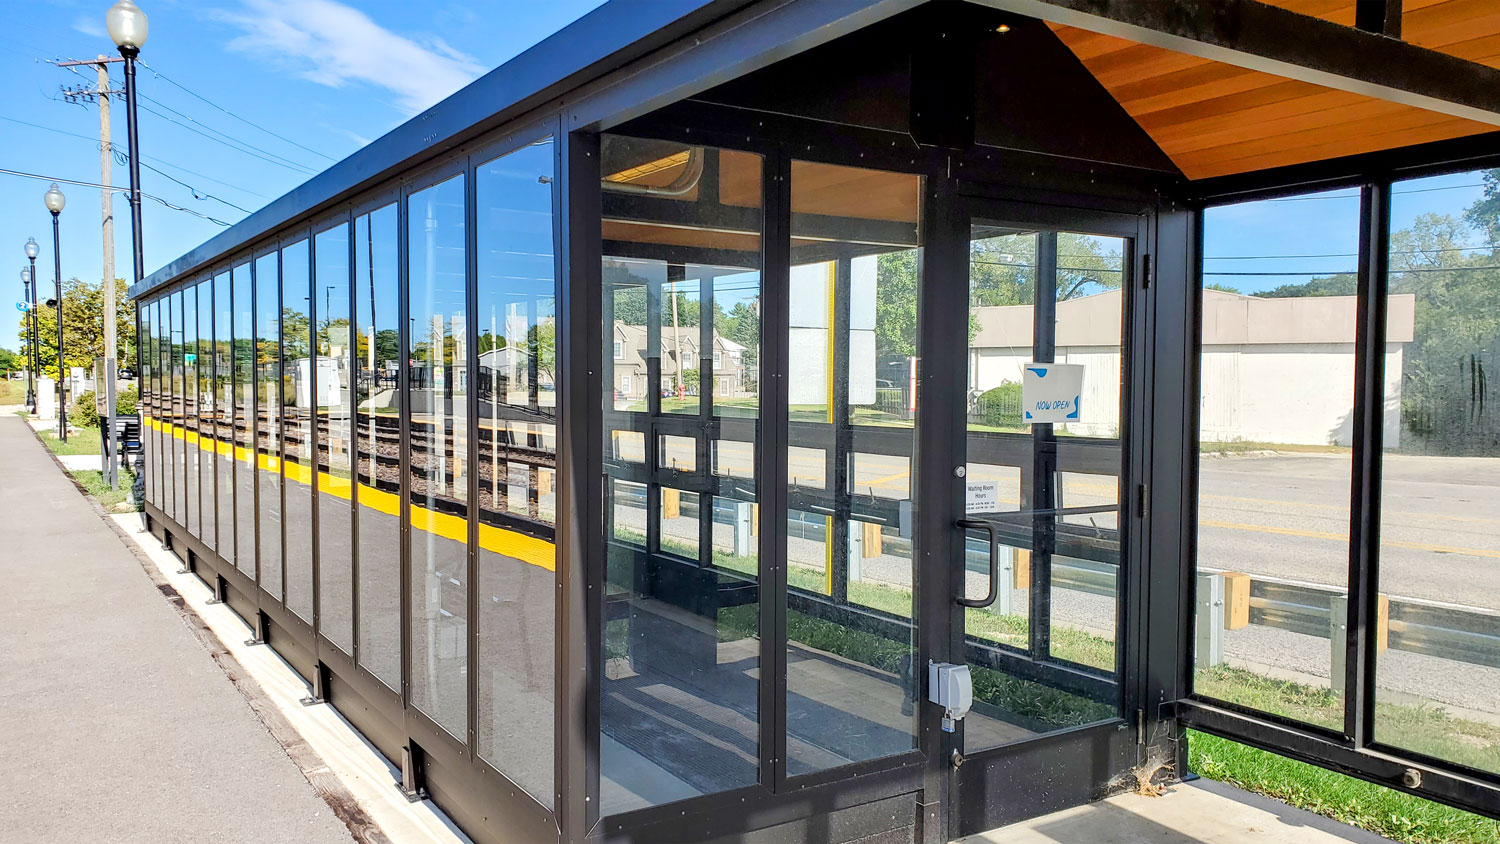 New waiting shelter on the Chicago inbound side.